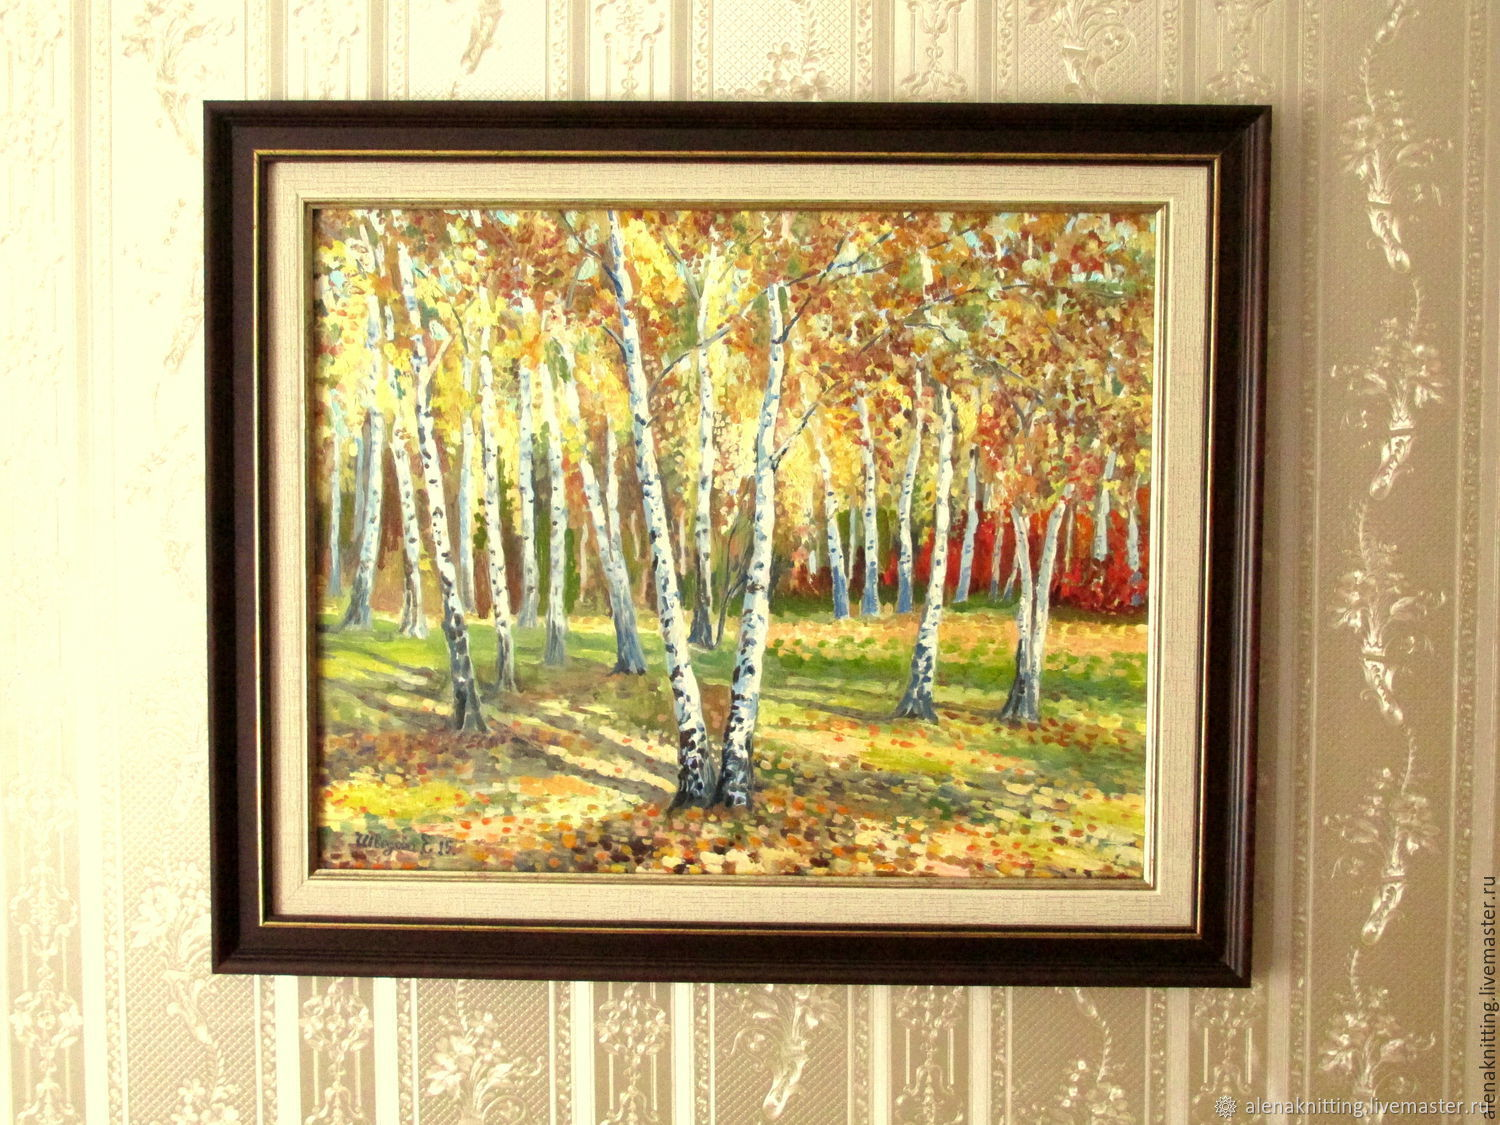 Oil painting 'Country birch calico.', Pictures, Moscow,  Фото №1